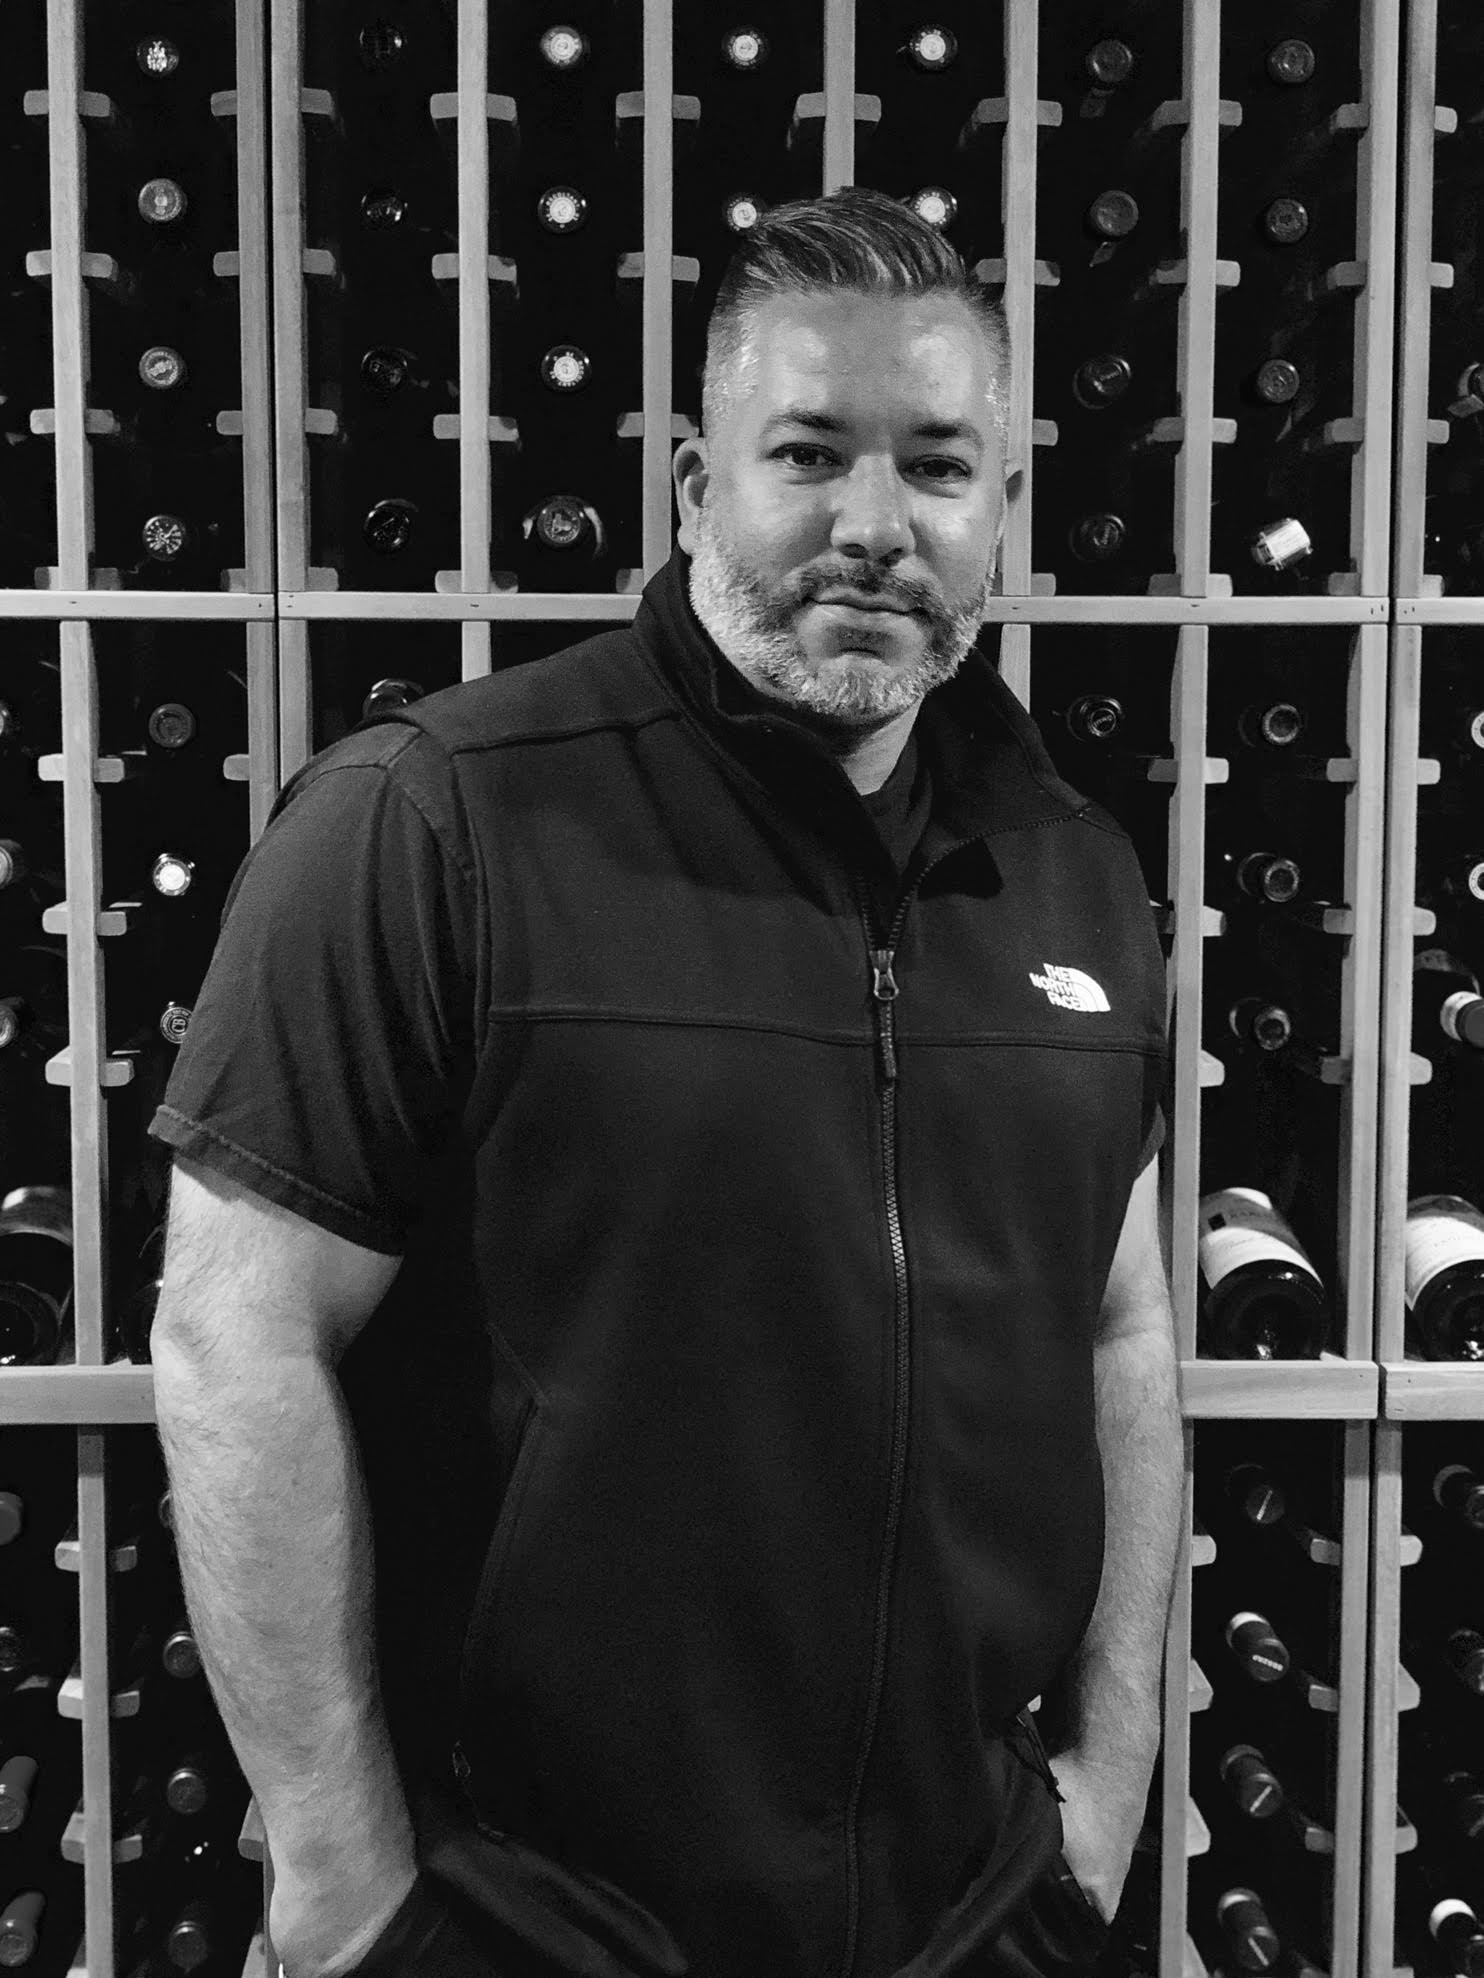 Great photo here of Joe D'Angelo in his cellar.